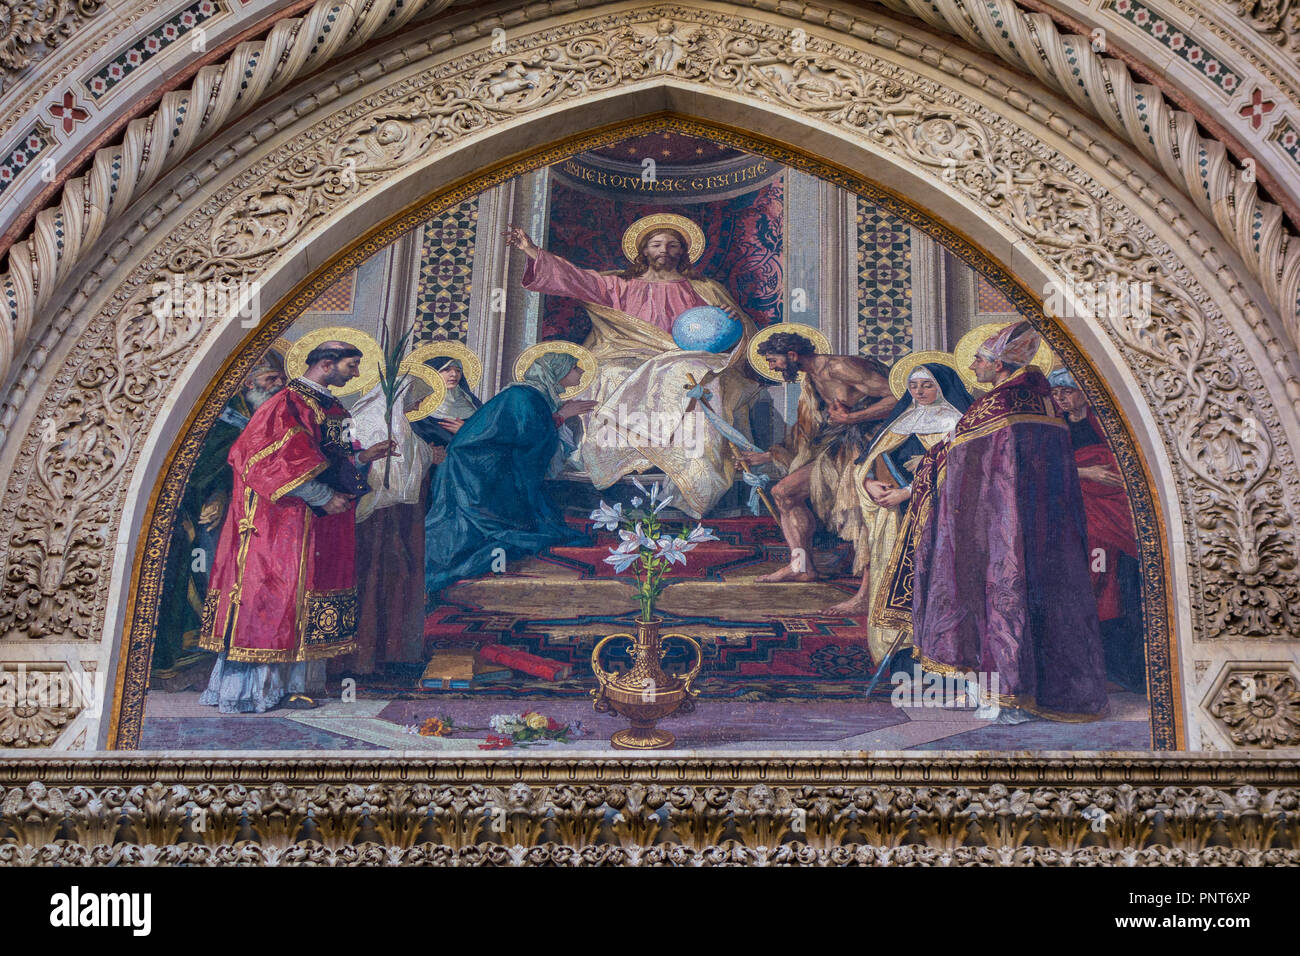 Mosaic showing Christ on the throne with the Virgin Mary and Saint John the Baptist at either side of him plus other saints, Florence Cathedral, Italy - Stock Image